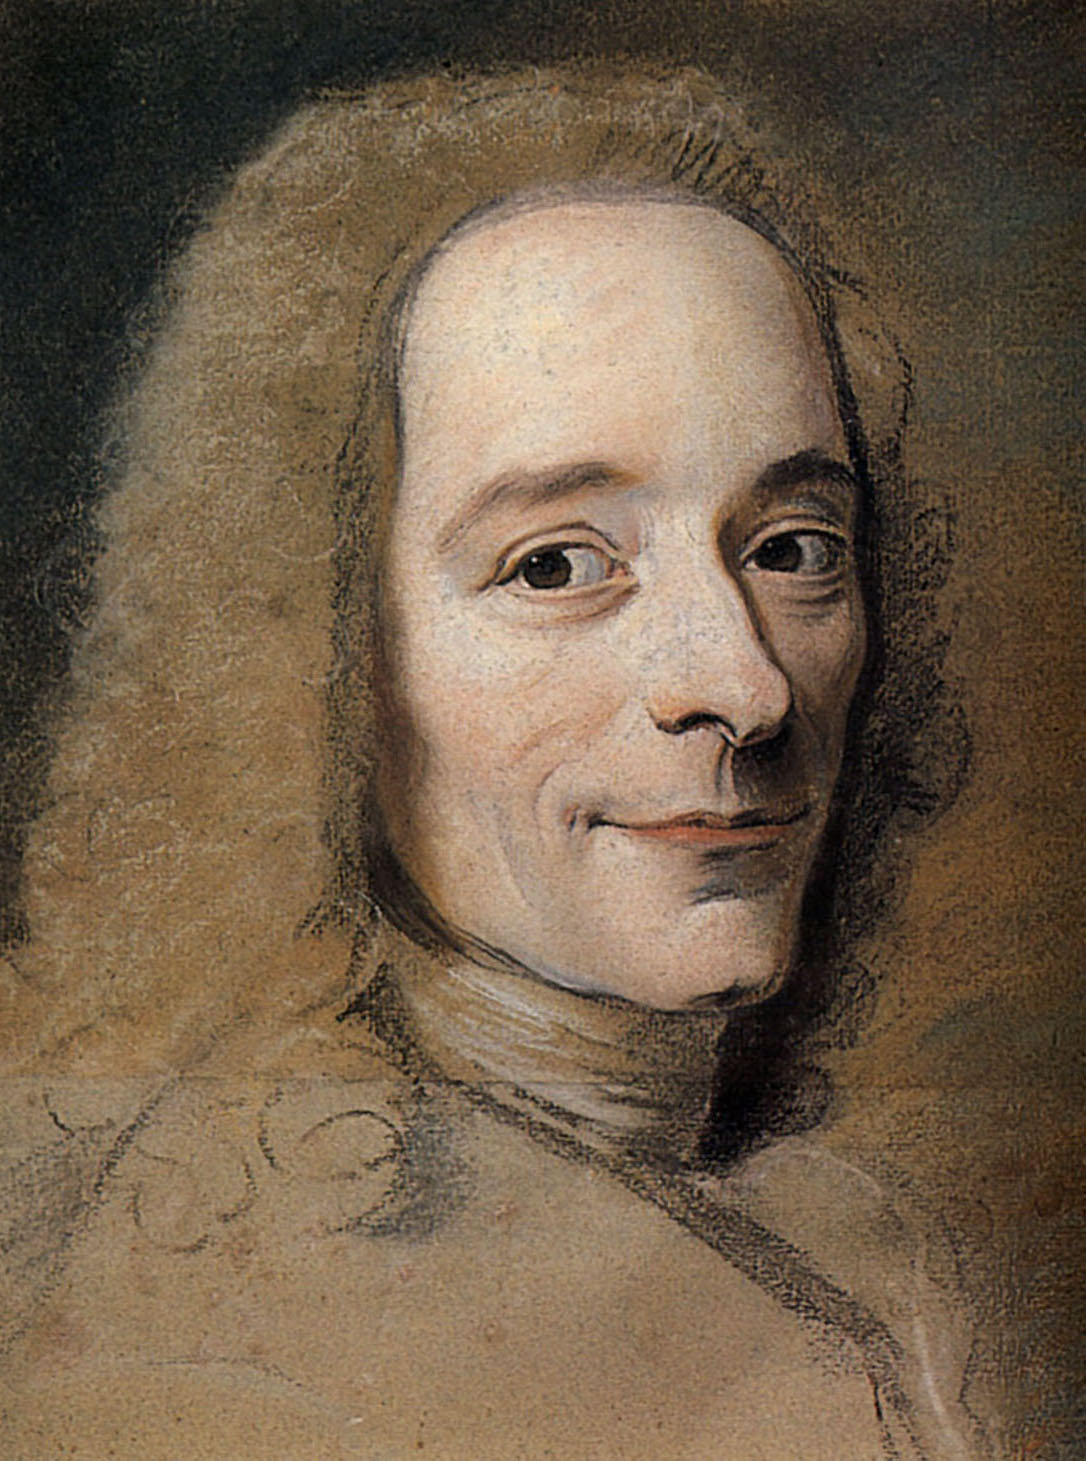 Enlightenment voltaire